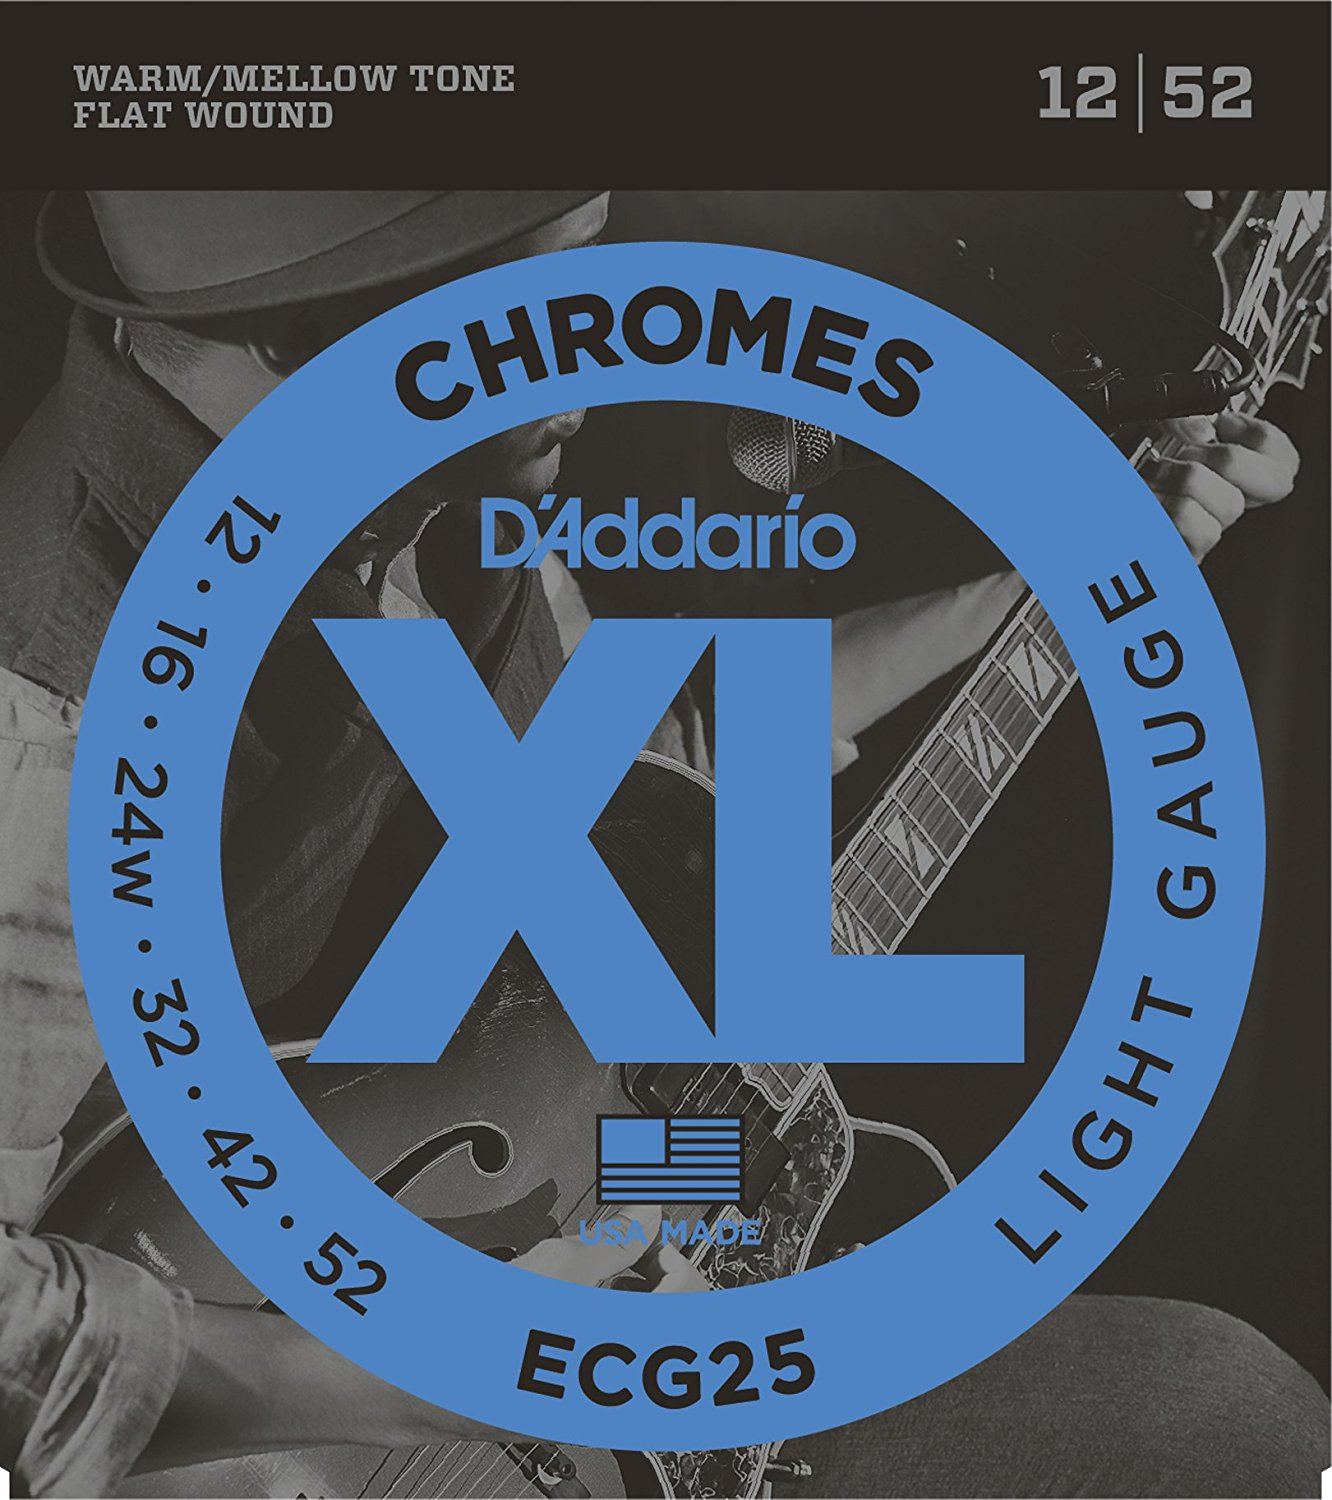 D'Addario ECG25 XL Chromes Jazz Light Electric Guitar Strings FlatWound Electric Guitar Strings, Light, 12-52 rotosound sm77 jazz bass flatwound strings monel